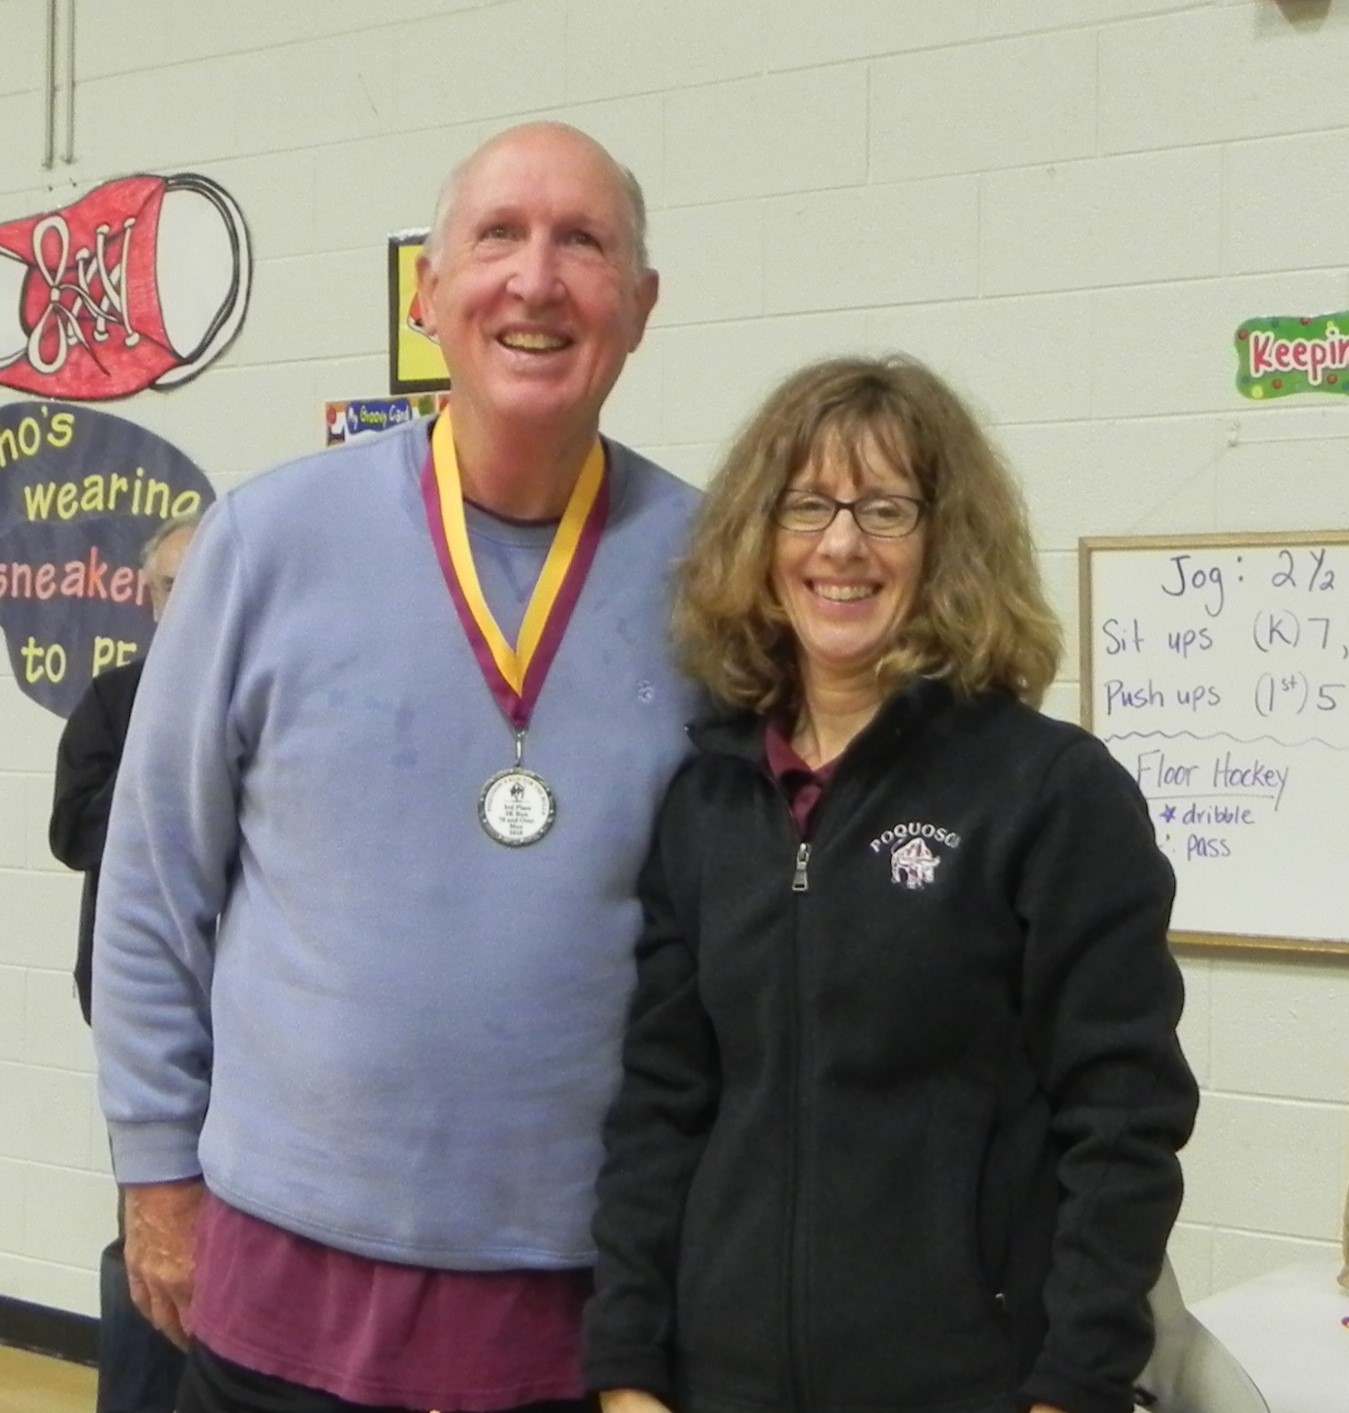 Winner__medal__standing_with_Dr._Parish.JPG